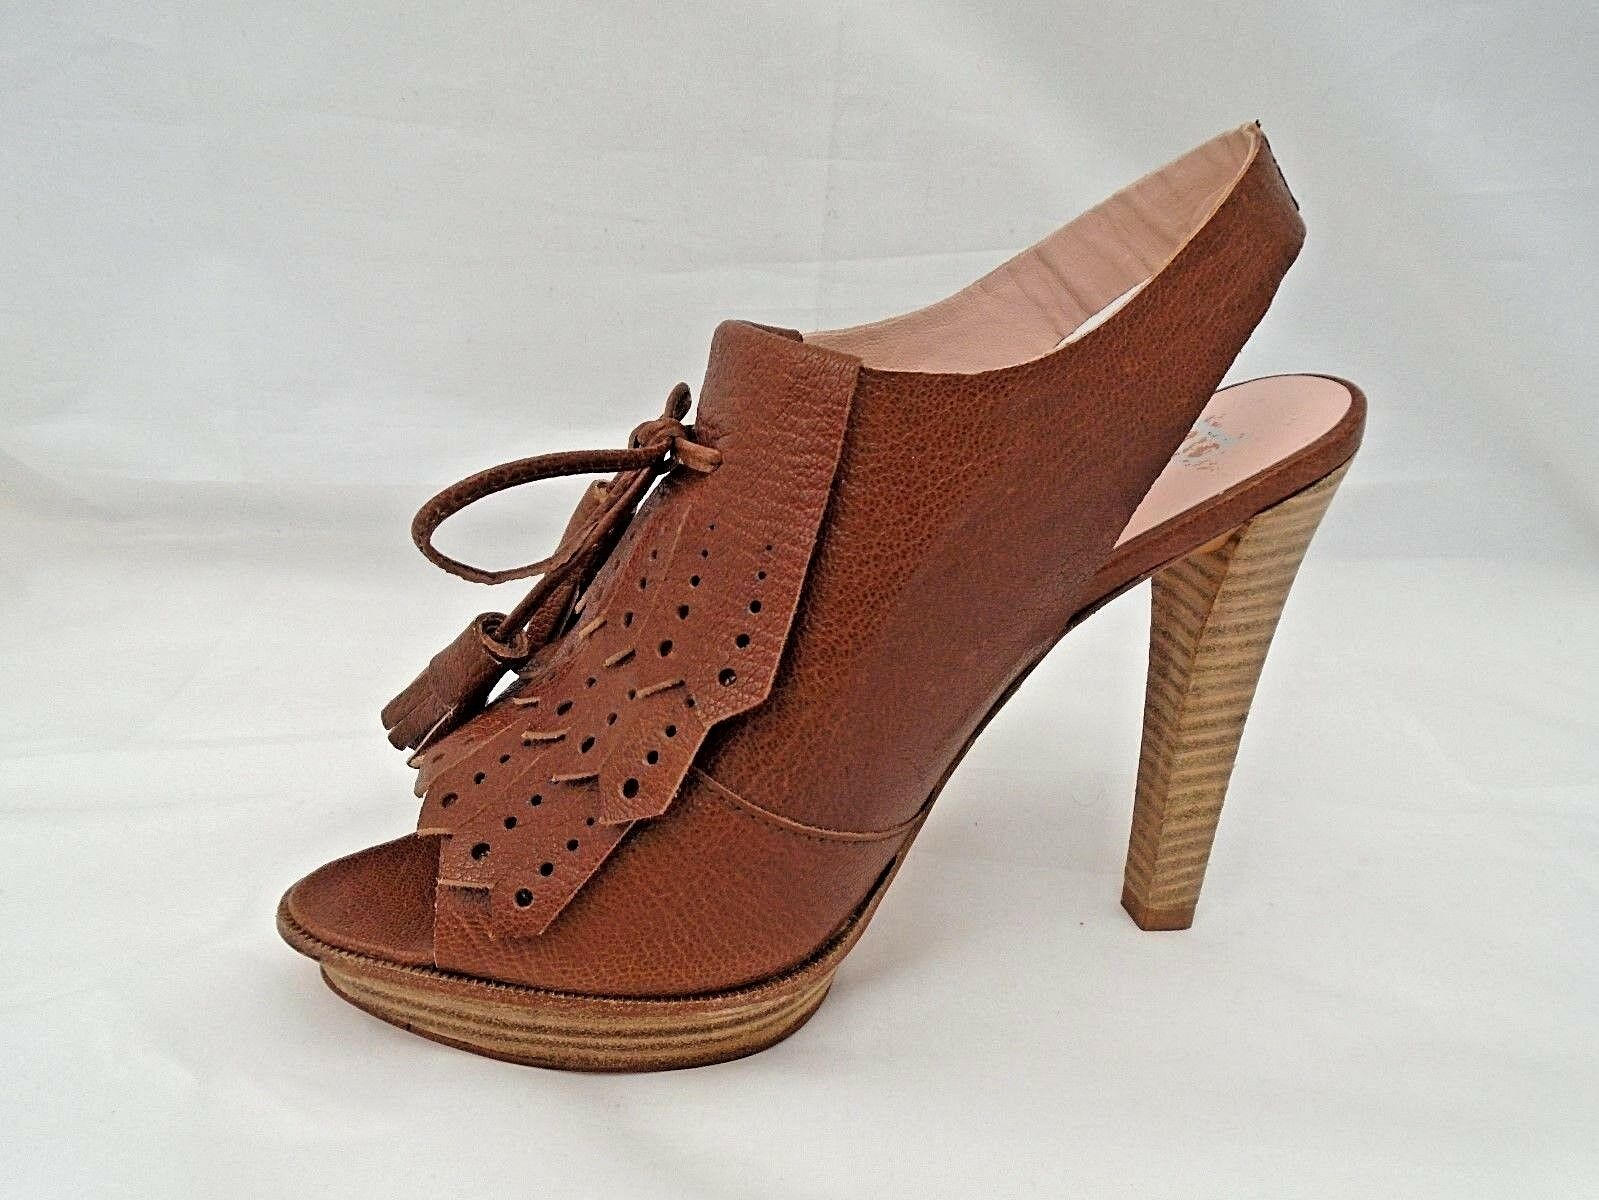 PACO GIL LADIES BROWN GRAINED LEATHER CASUAL HEELS SANDALS DamenschuheS UK 7 - EUR 40